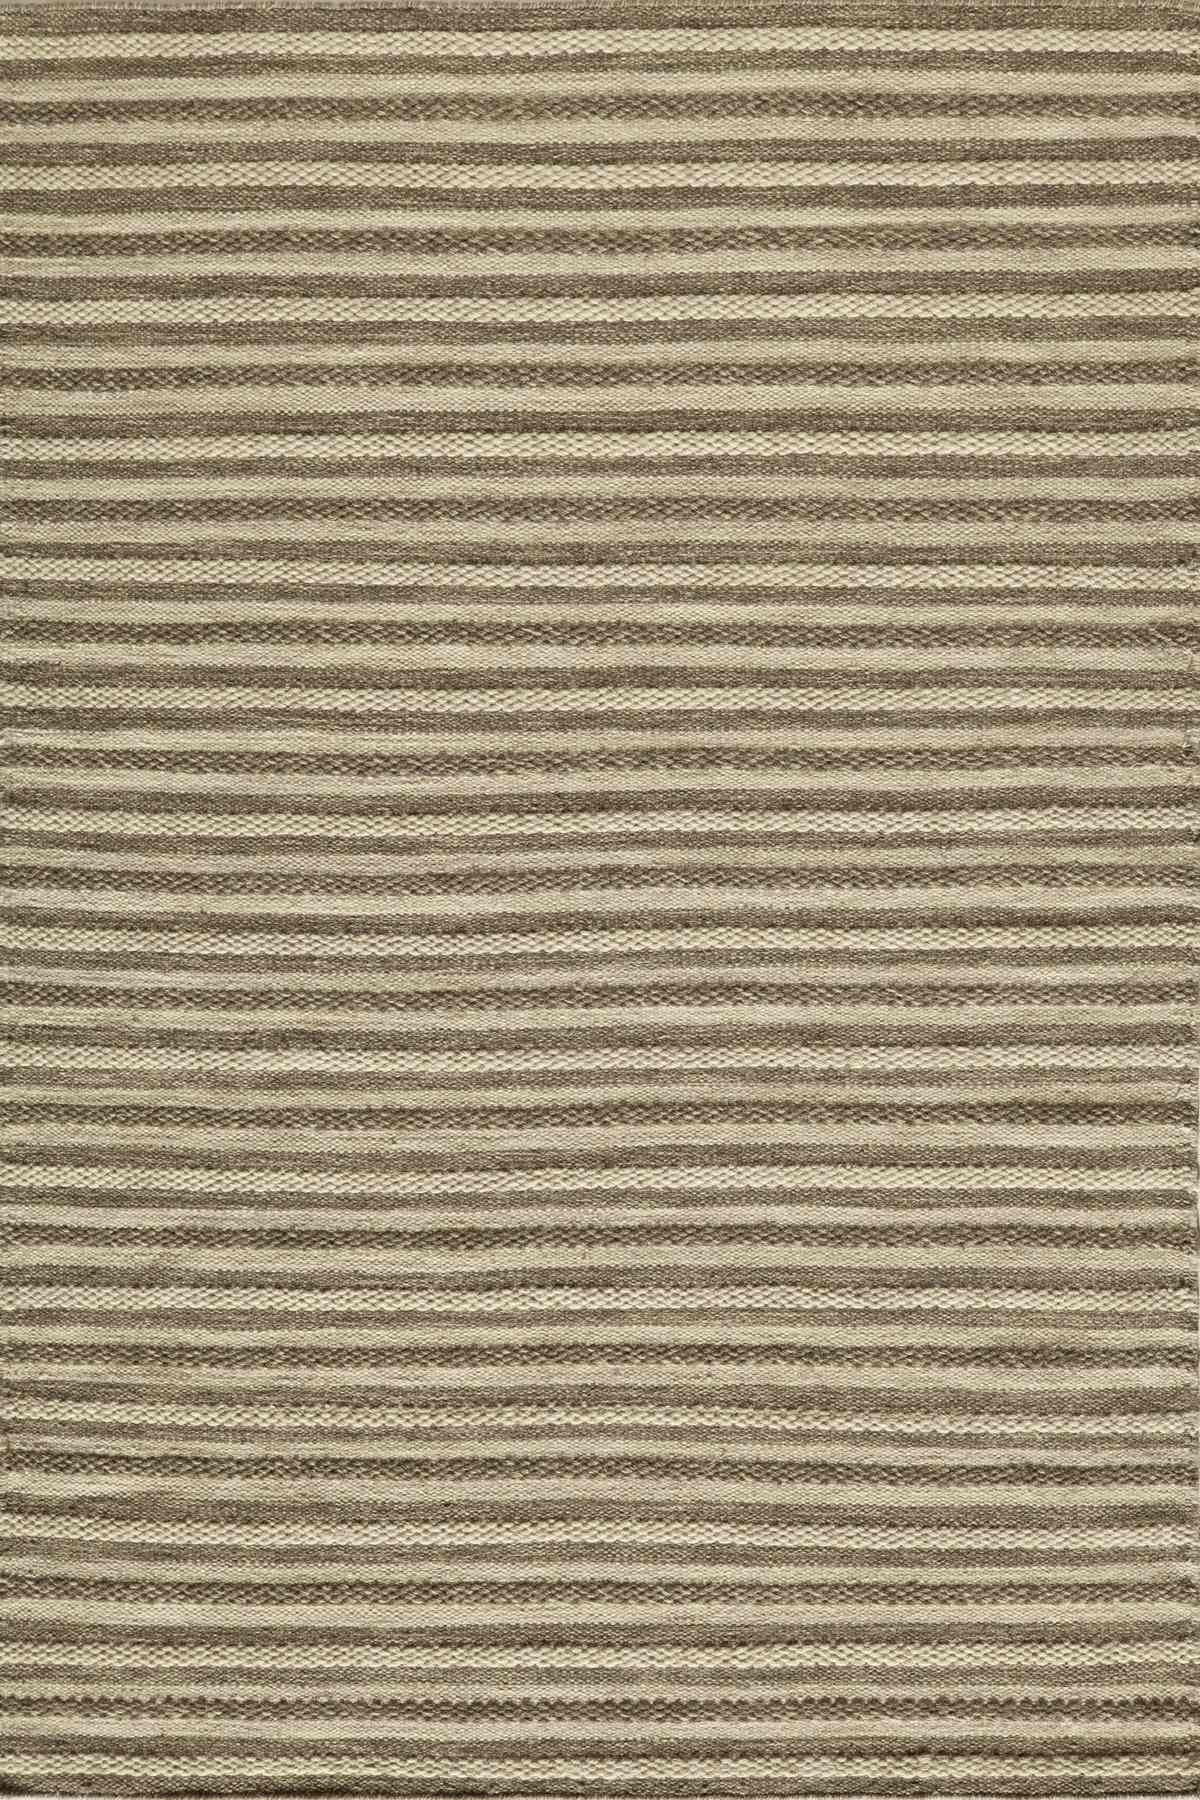 Charming Tan Momeni Rugs With Stripped Pattern For Floor Decor Ideas